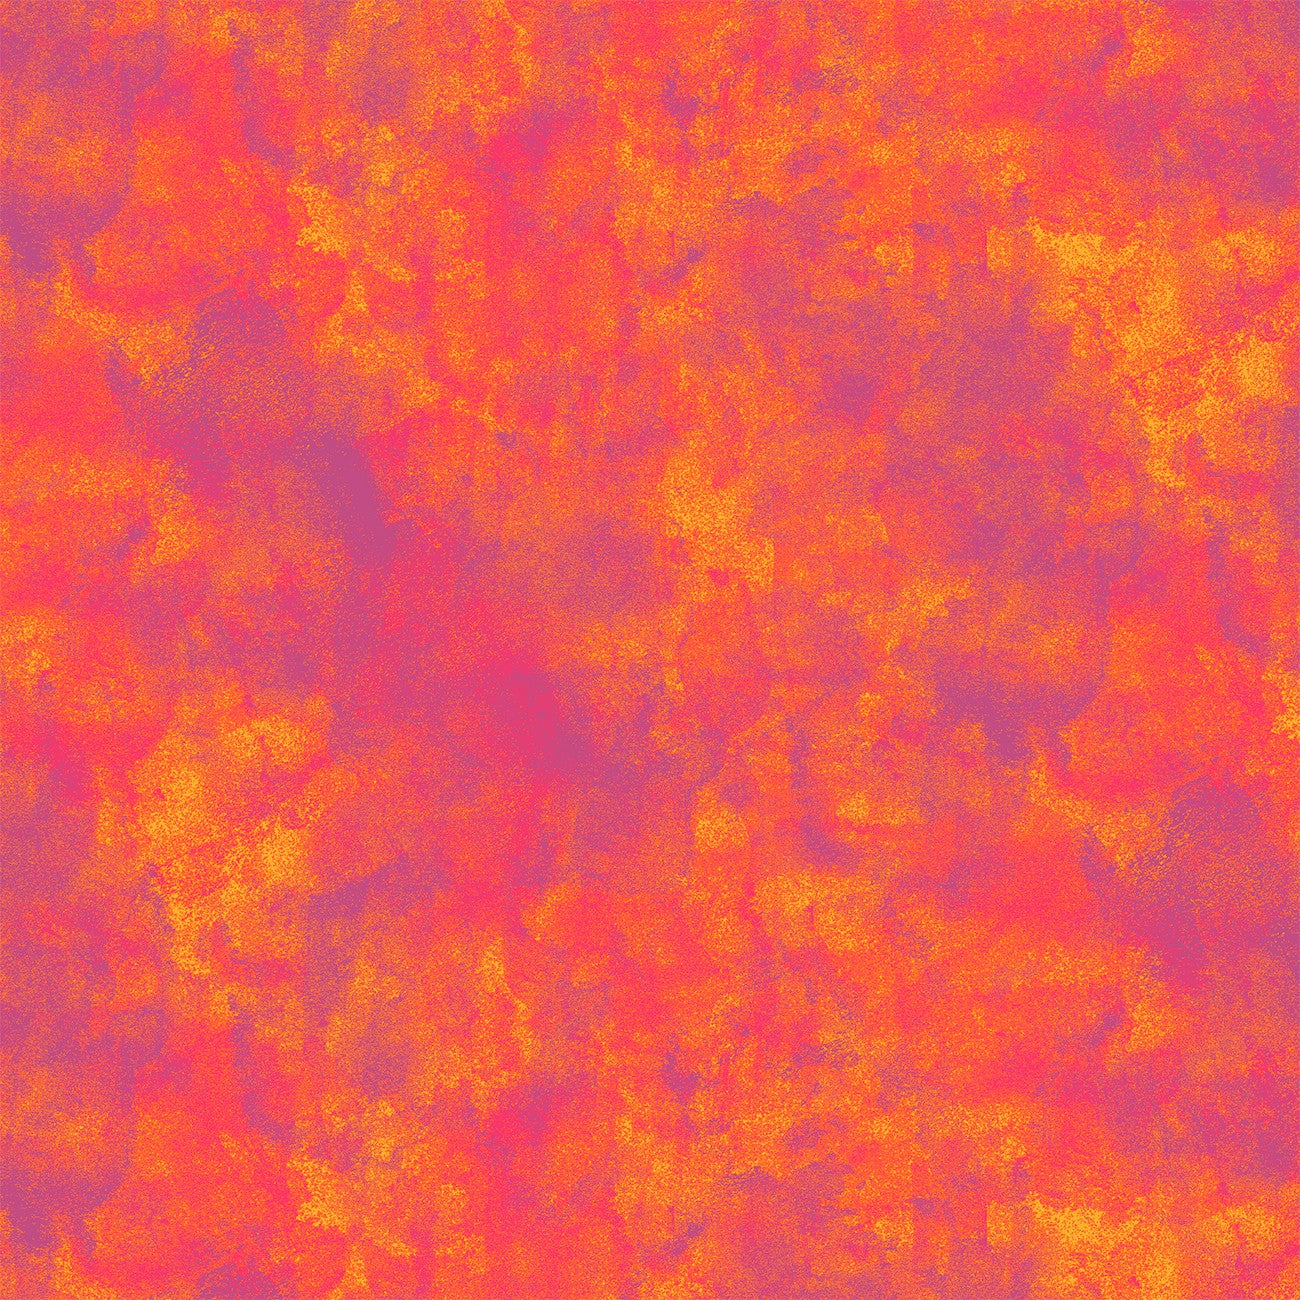 Orange Fire Digitally Printed 3W022720